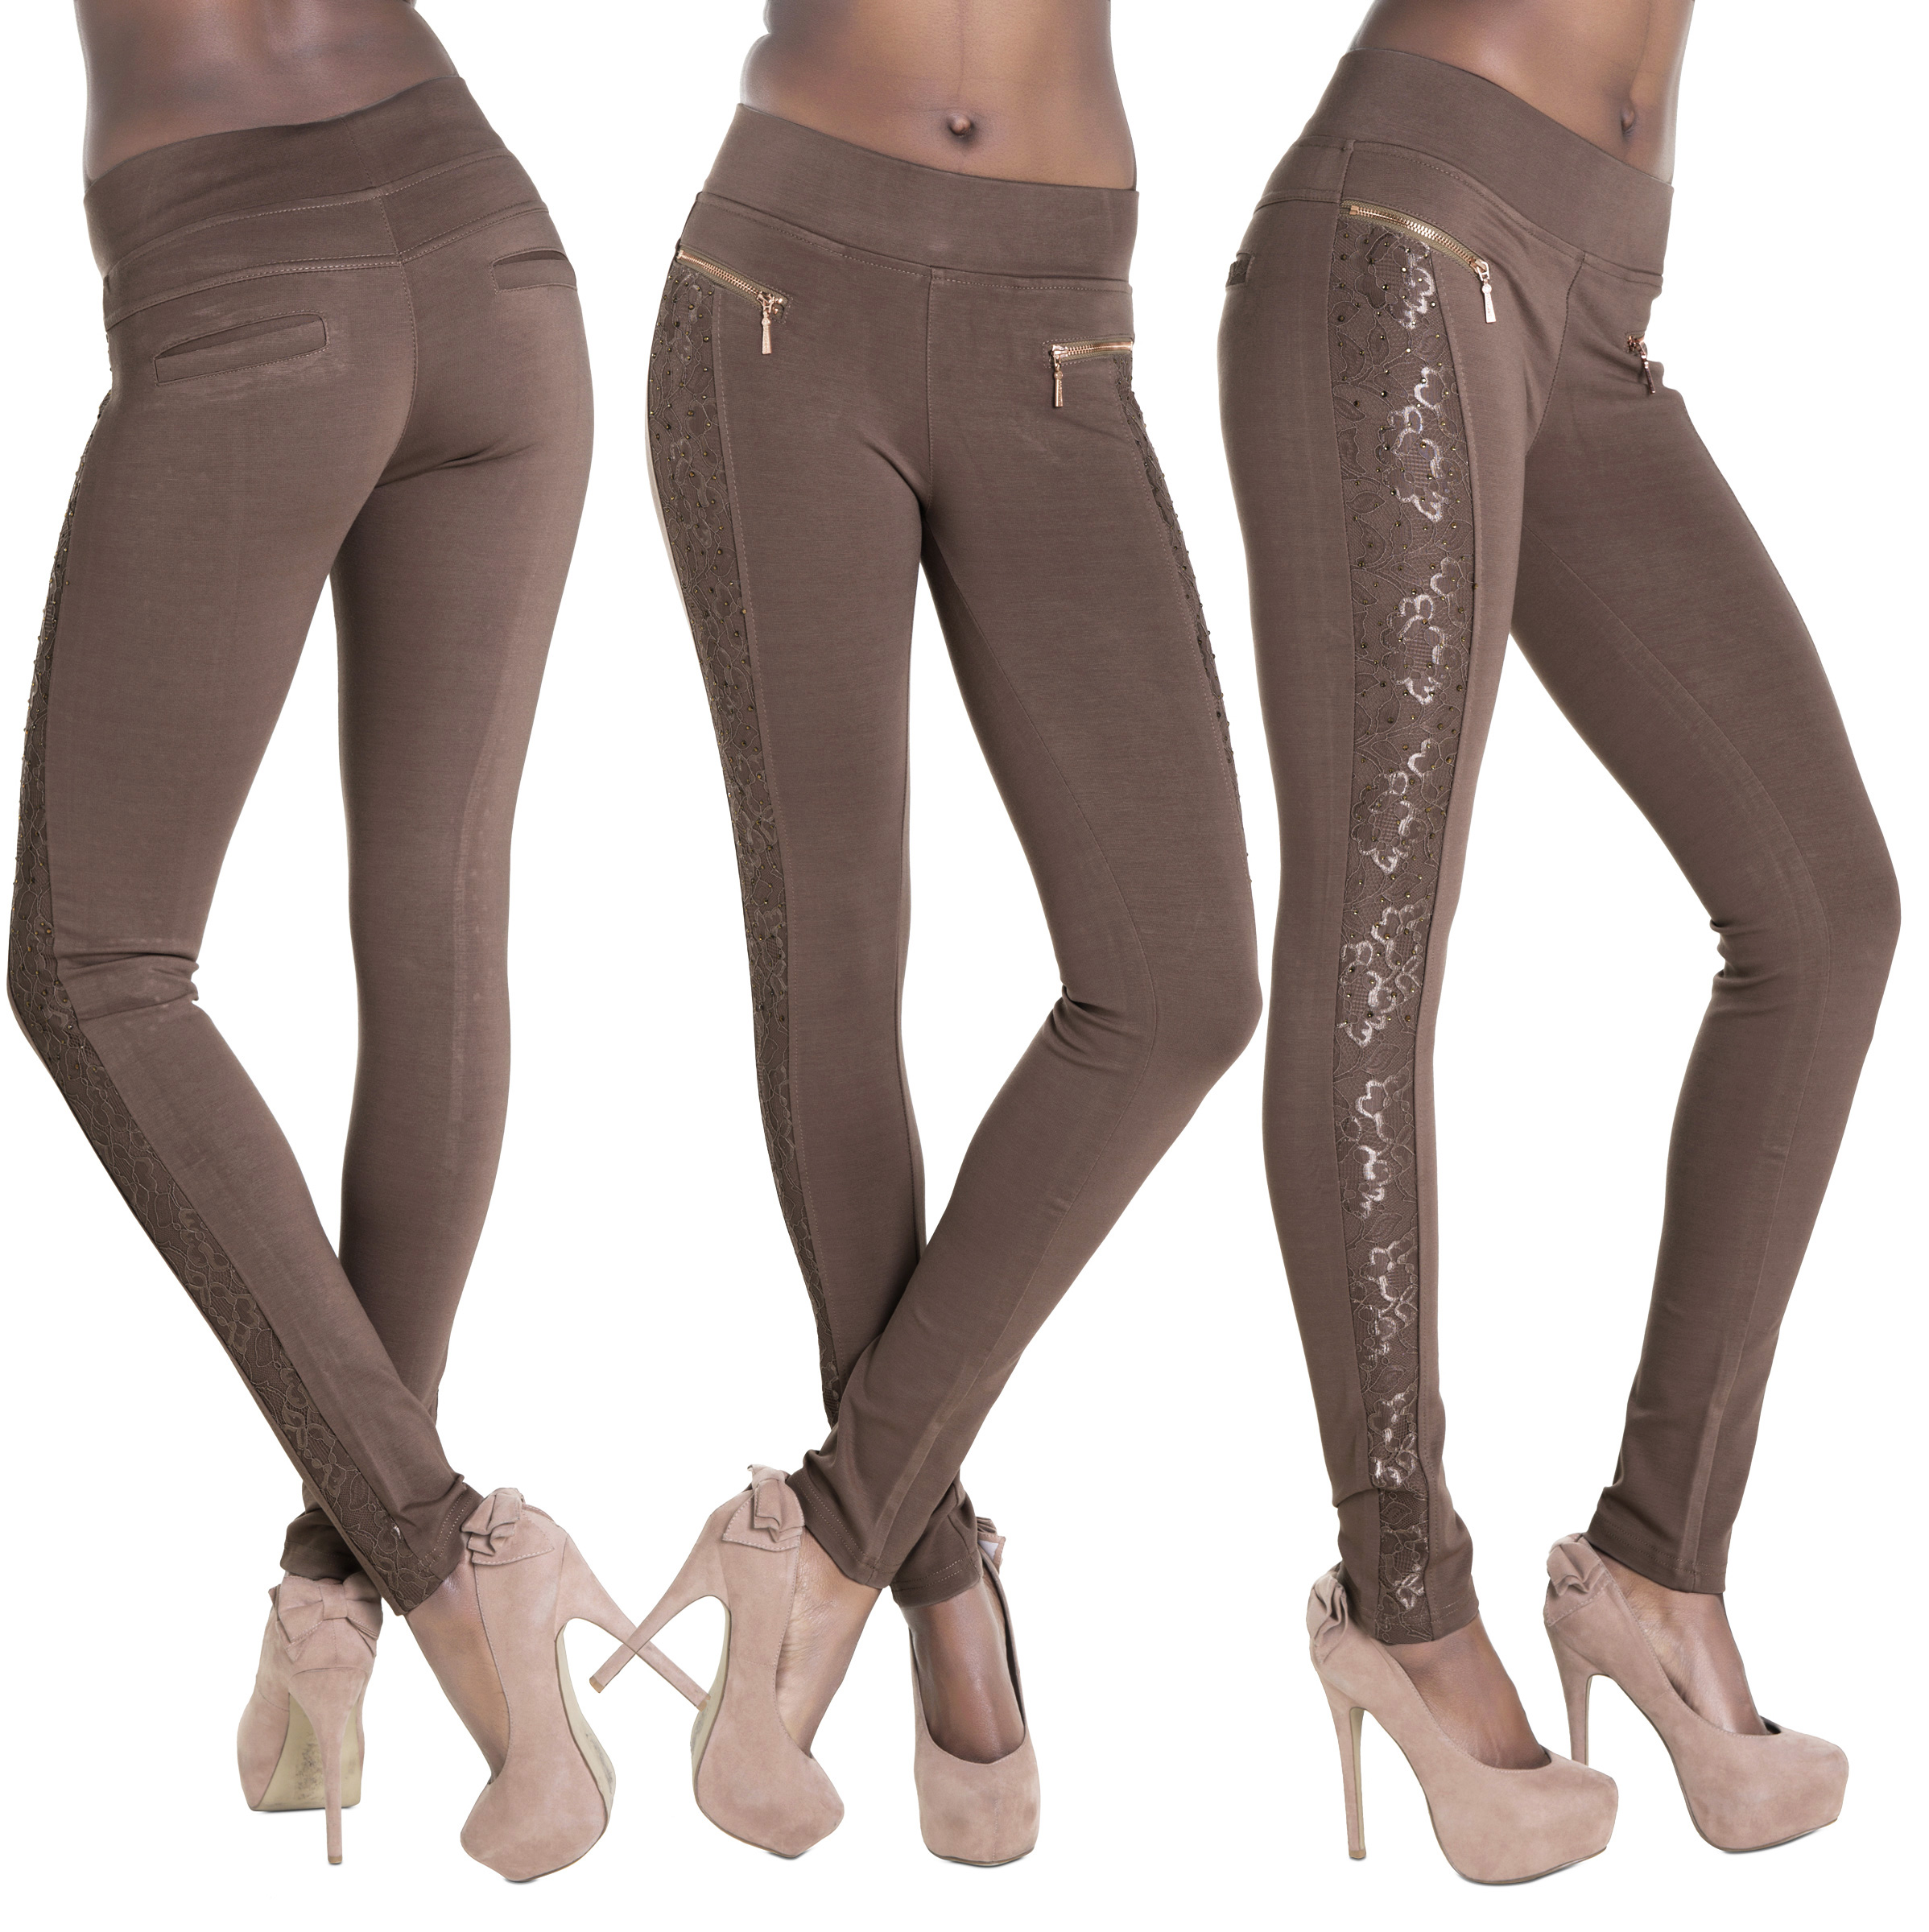 Try black high waisted leggings or white high waisted leggings to keep your stems lookin' slim! For short women's leggings, why not try slimming, petite leggings? Short girls should be careful about womens capri leggings, like crop leggings or short leggings! Tall girls, on the other hand, can rock black cropped leggings or white capri leggings.